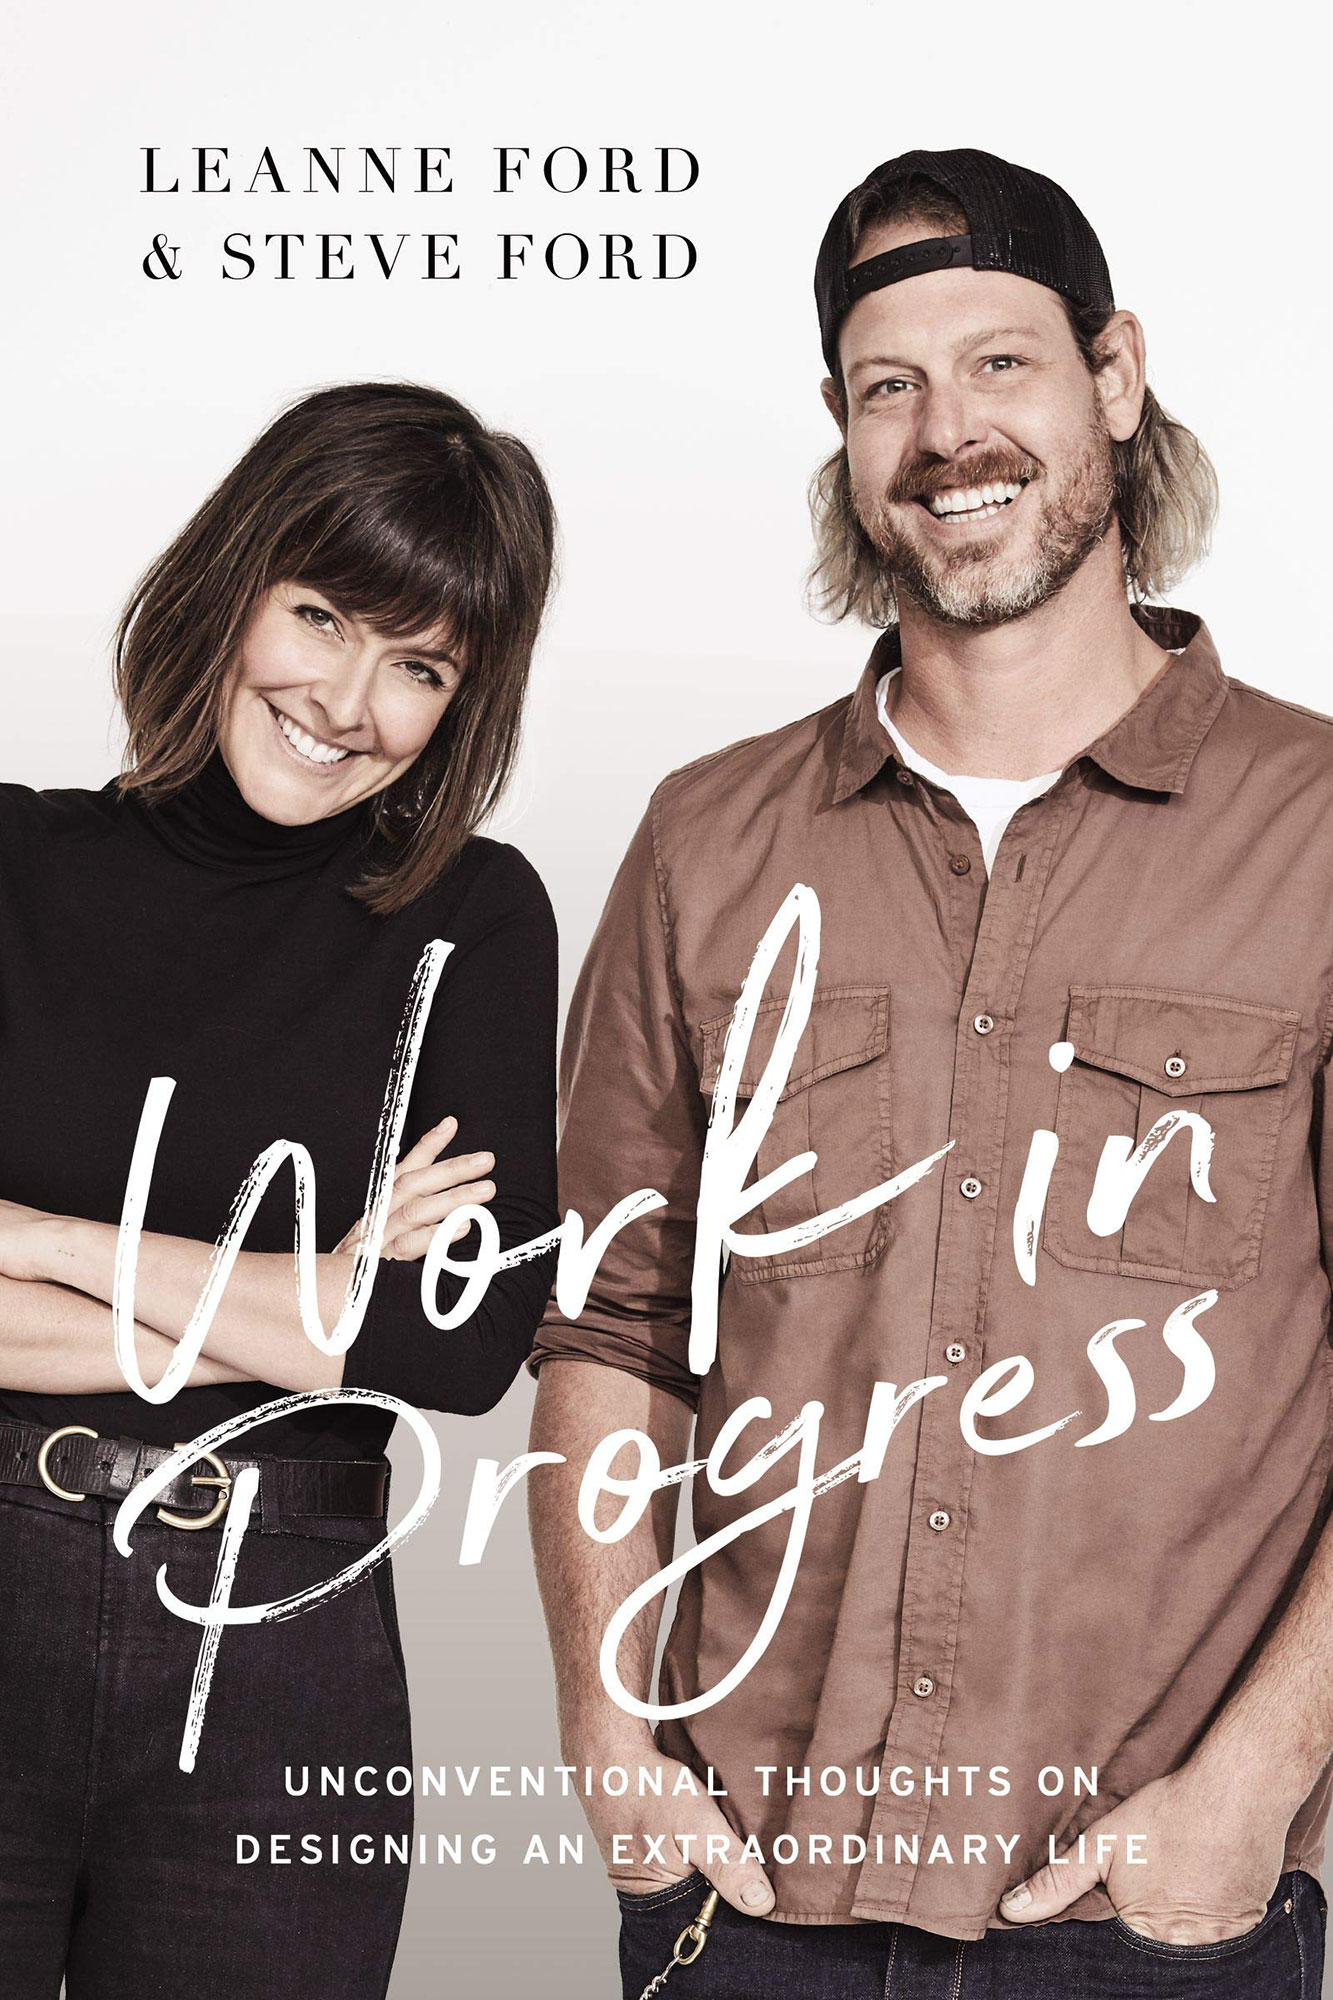 Leanne-Ford-gift-guide-work-in-progress-book